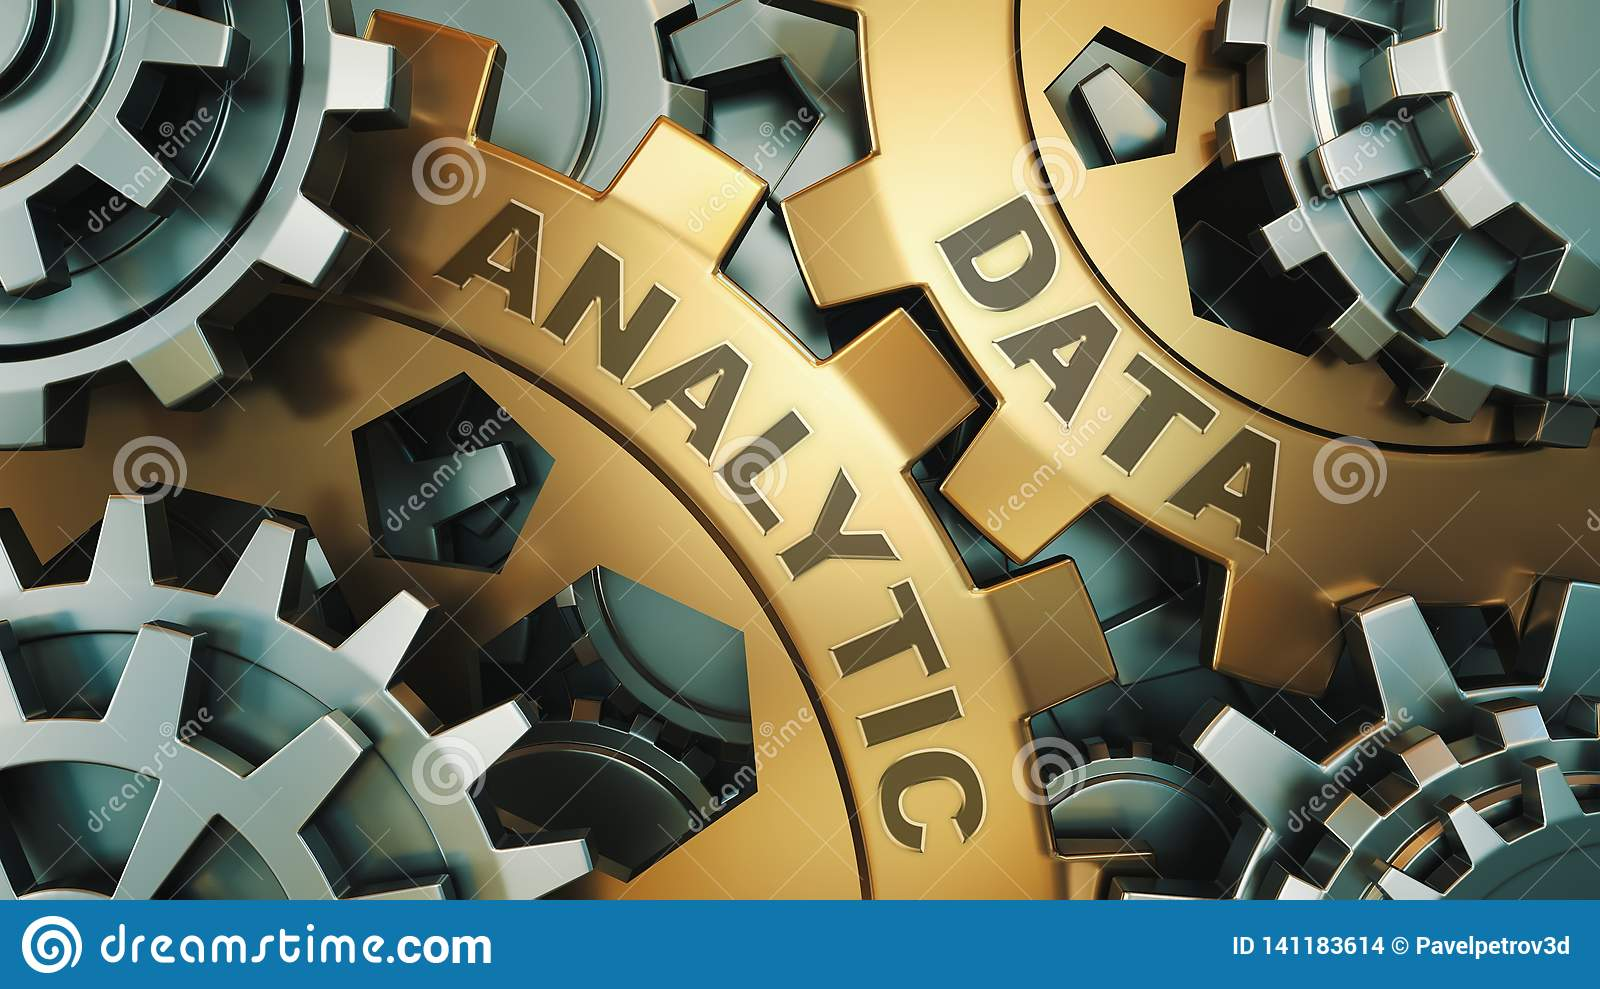 The inscription on the gold gears `Data analytic `. Business concept. Gear mechanism.